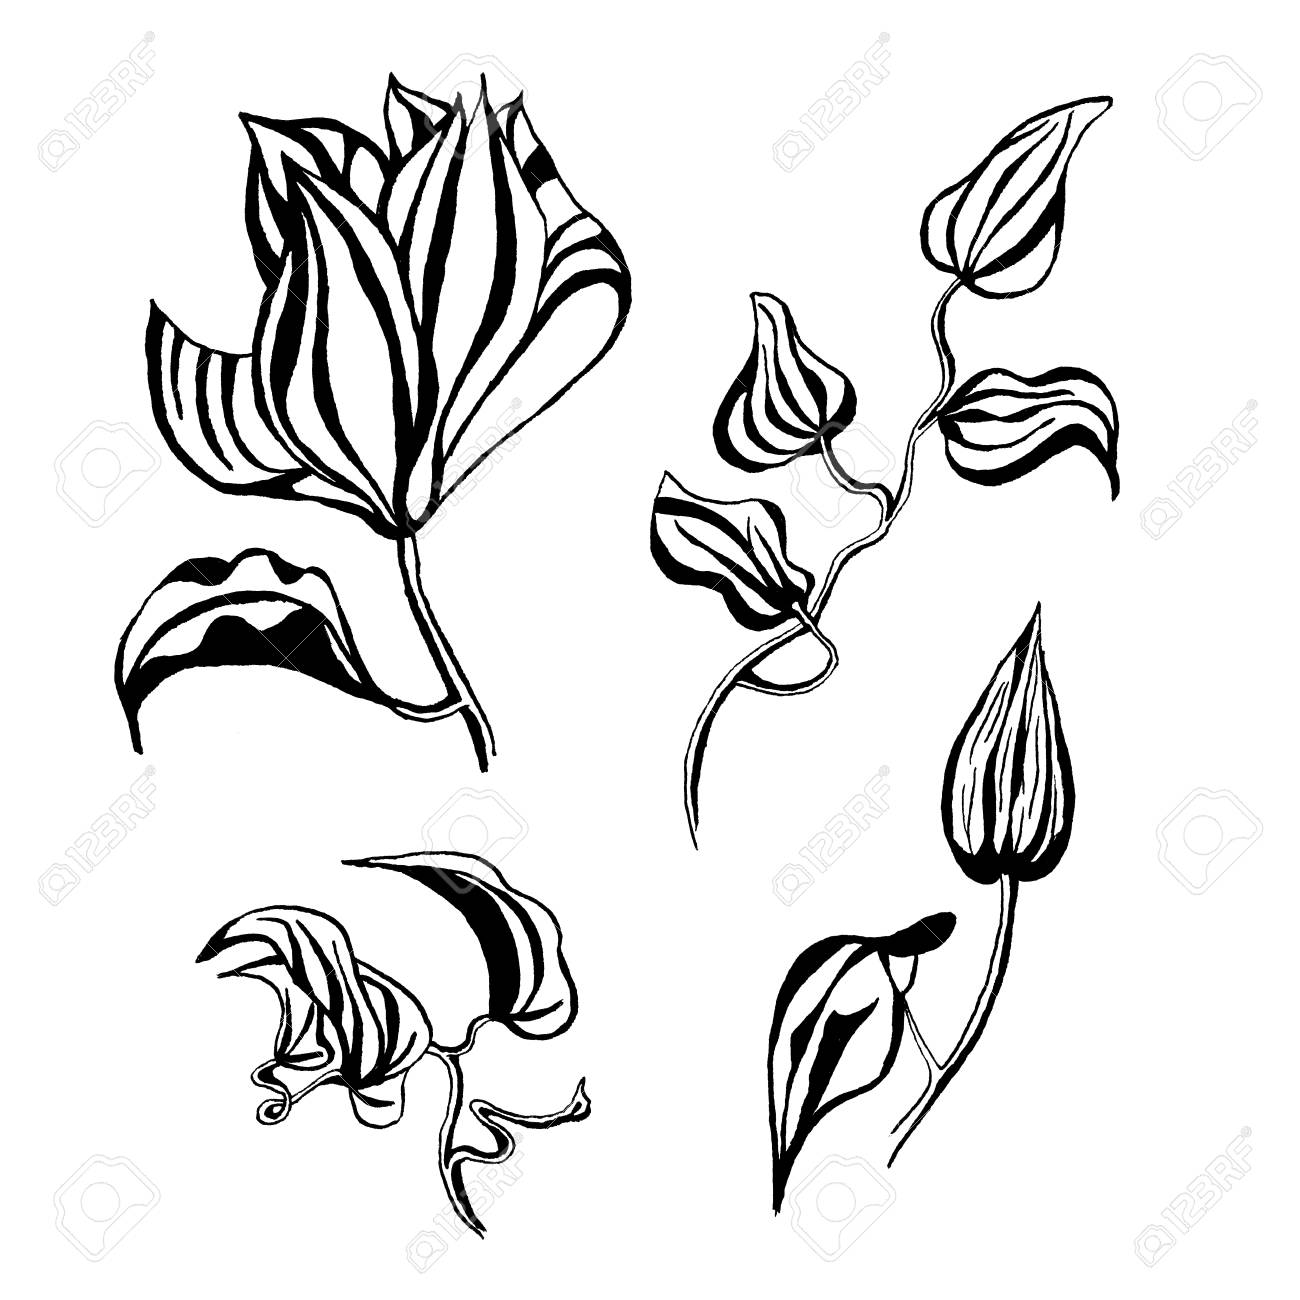 Graphic Clematis Flower Set Isolated On White Background Hand Drawn Ink Botanical Black And White Monochrome Illustration For Wedding Printing